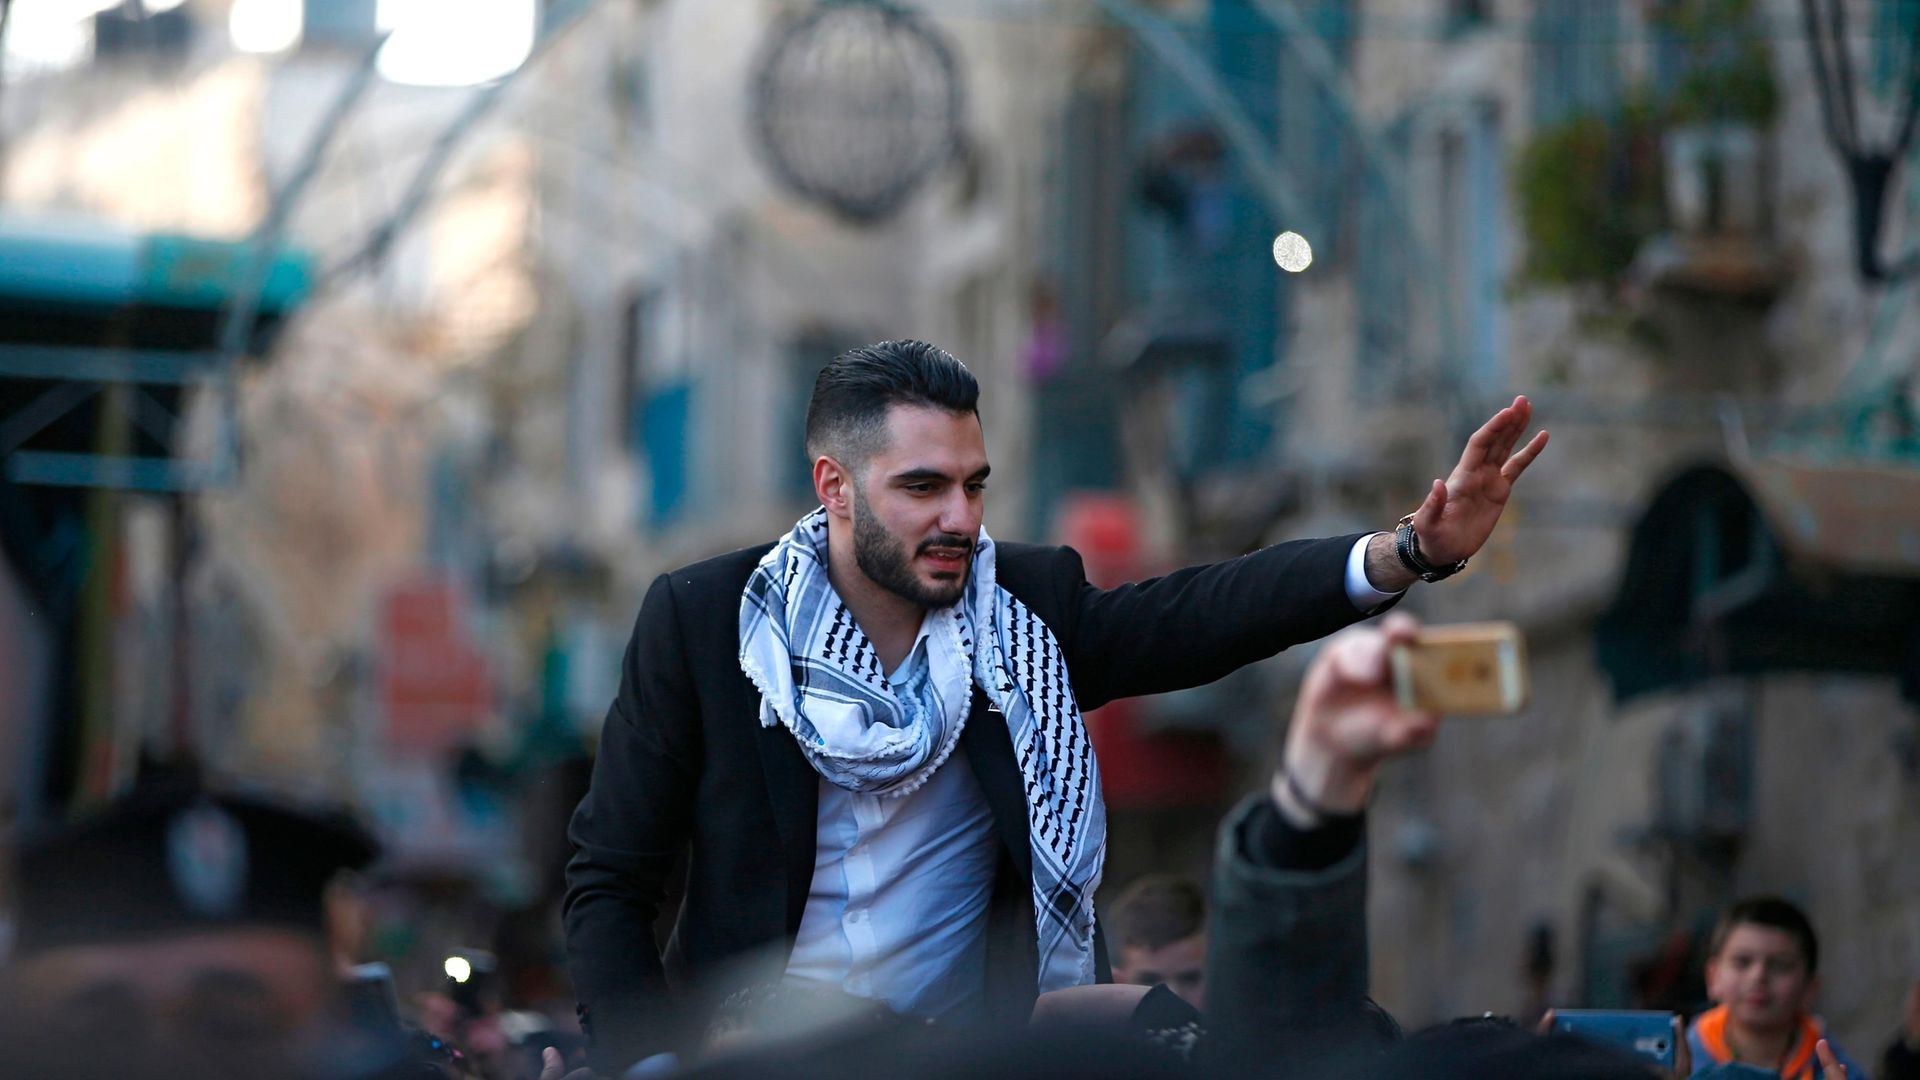 Yacoub Shaheen is greeted by crowds in his hometown of Bethlehem after winning Arab Idol in 2017 - Credit: AFP via Getty Images